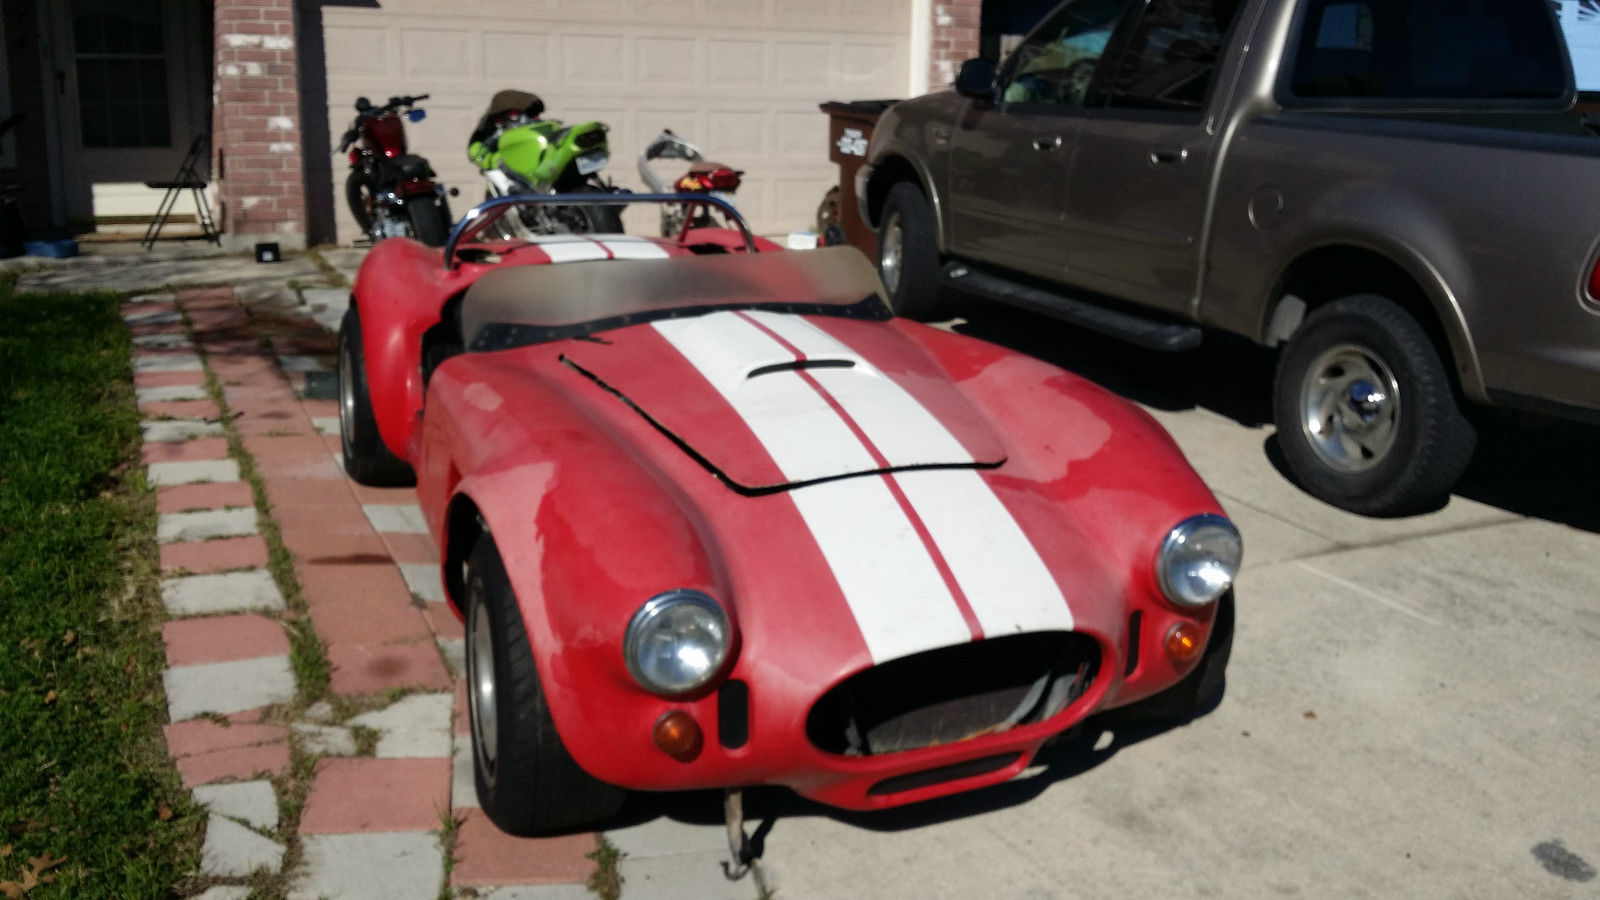 1966 AC Cobra  C4 chassis and motor - Classic Replica/Kit Makes AC